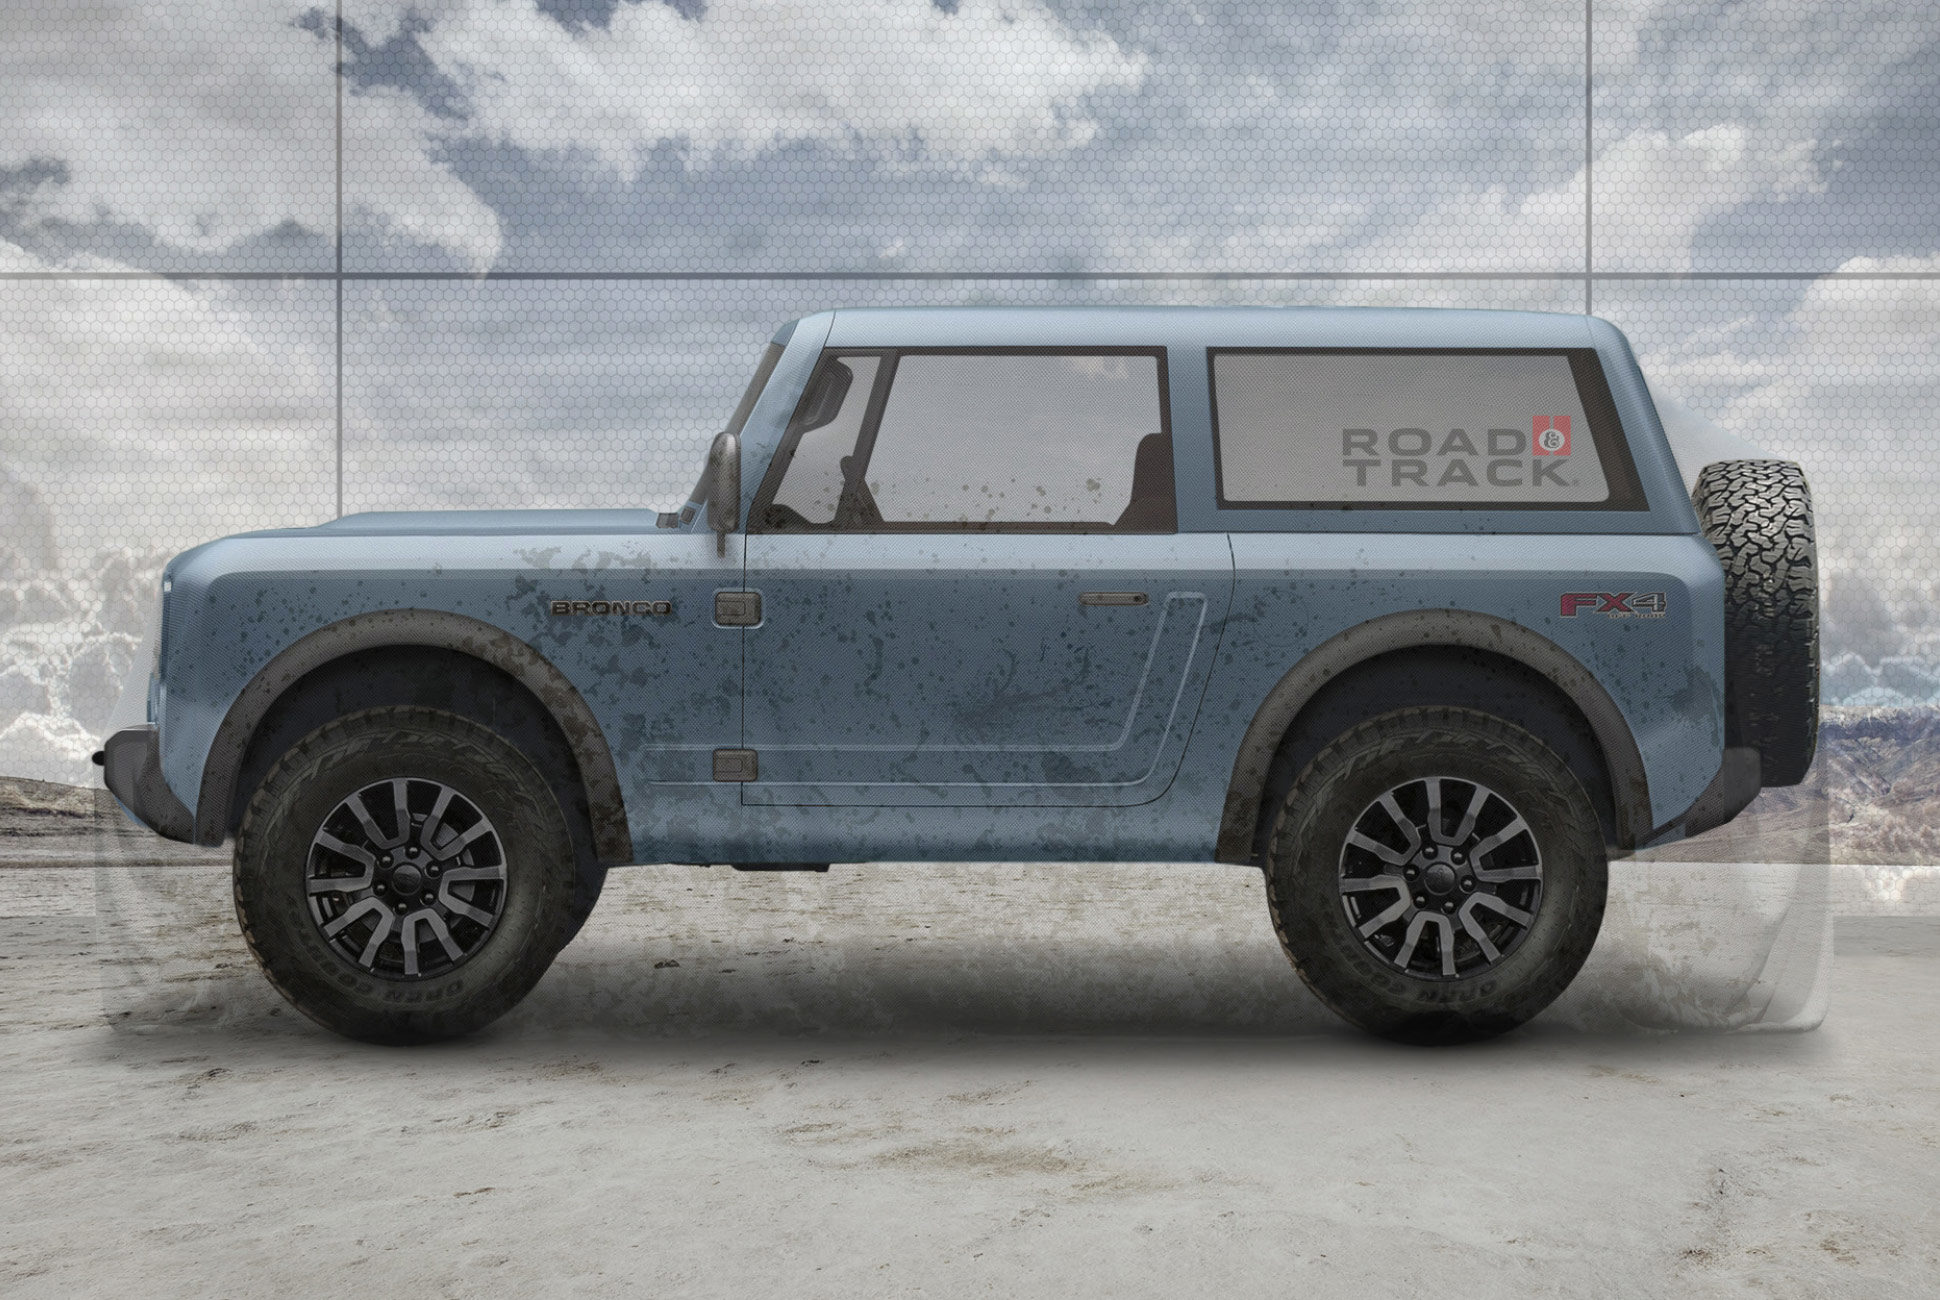 Ford Bronco 2020 4 Door >> Ford Akui Upgrade Desain Baru Ford Bronco 2020 - blackxperience.com